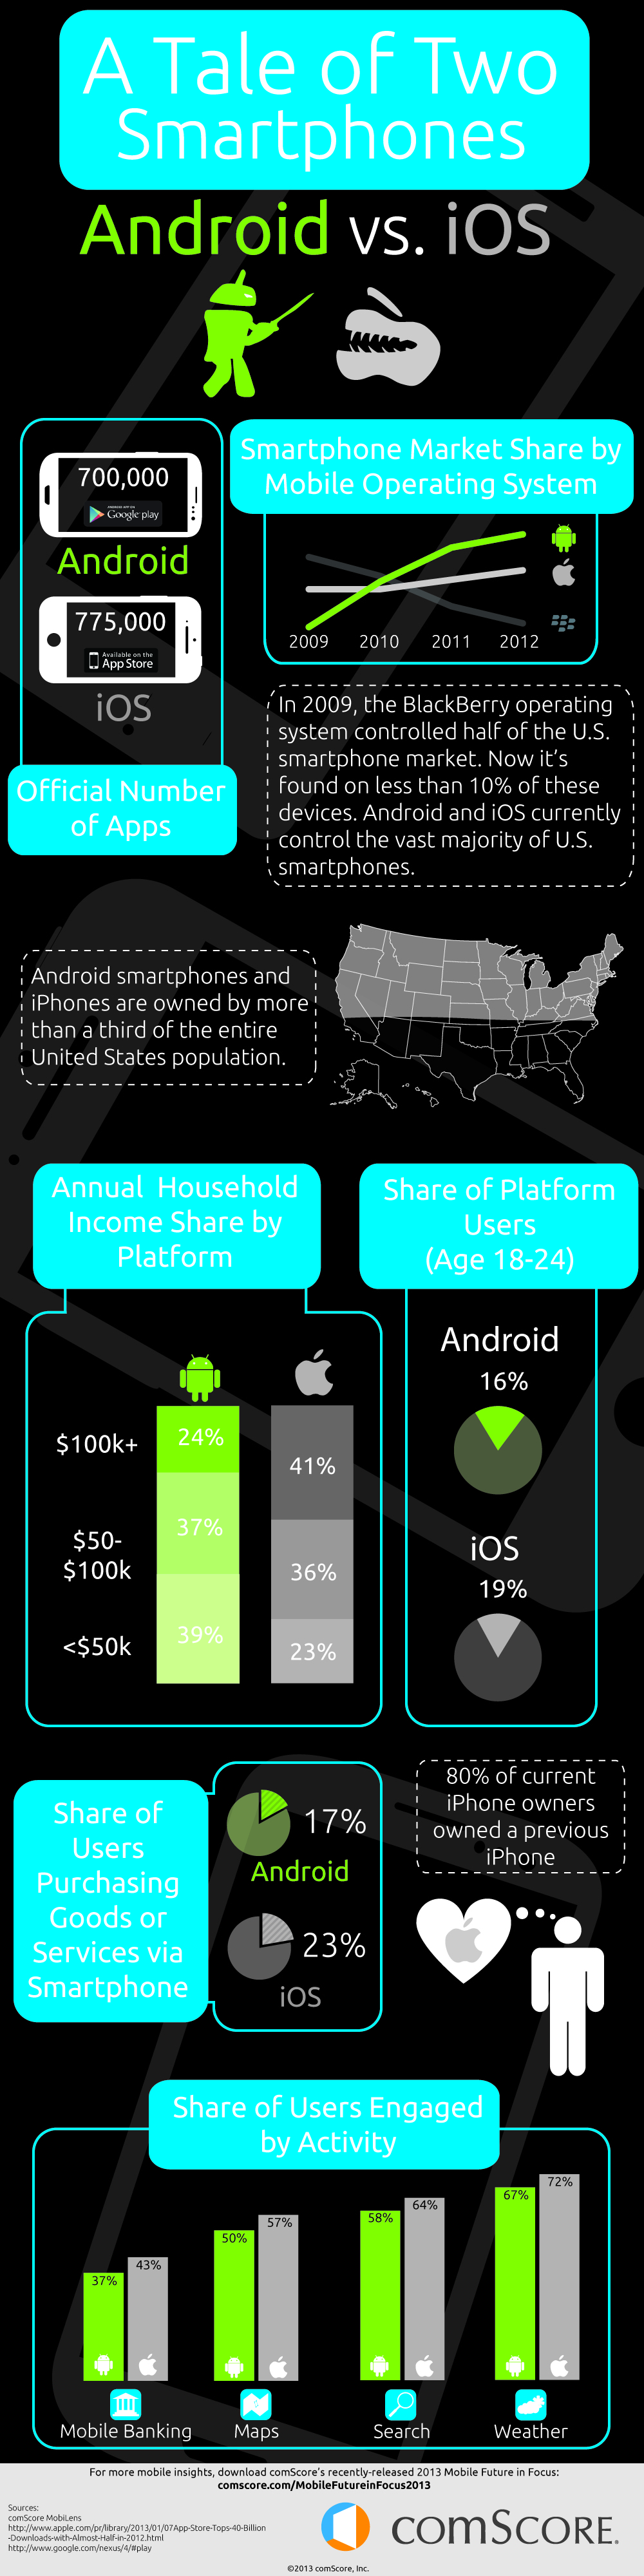 Android Vs. iOS Users Differences Every Developer Should